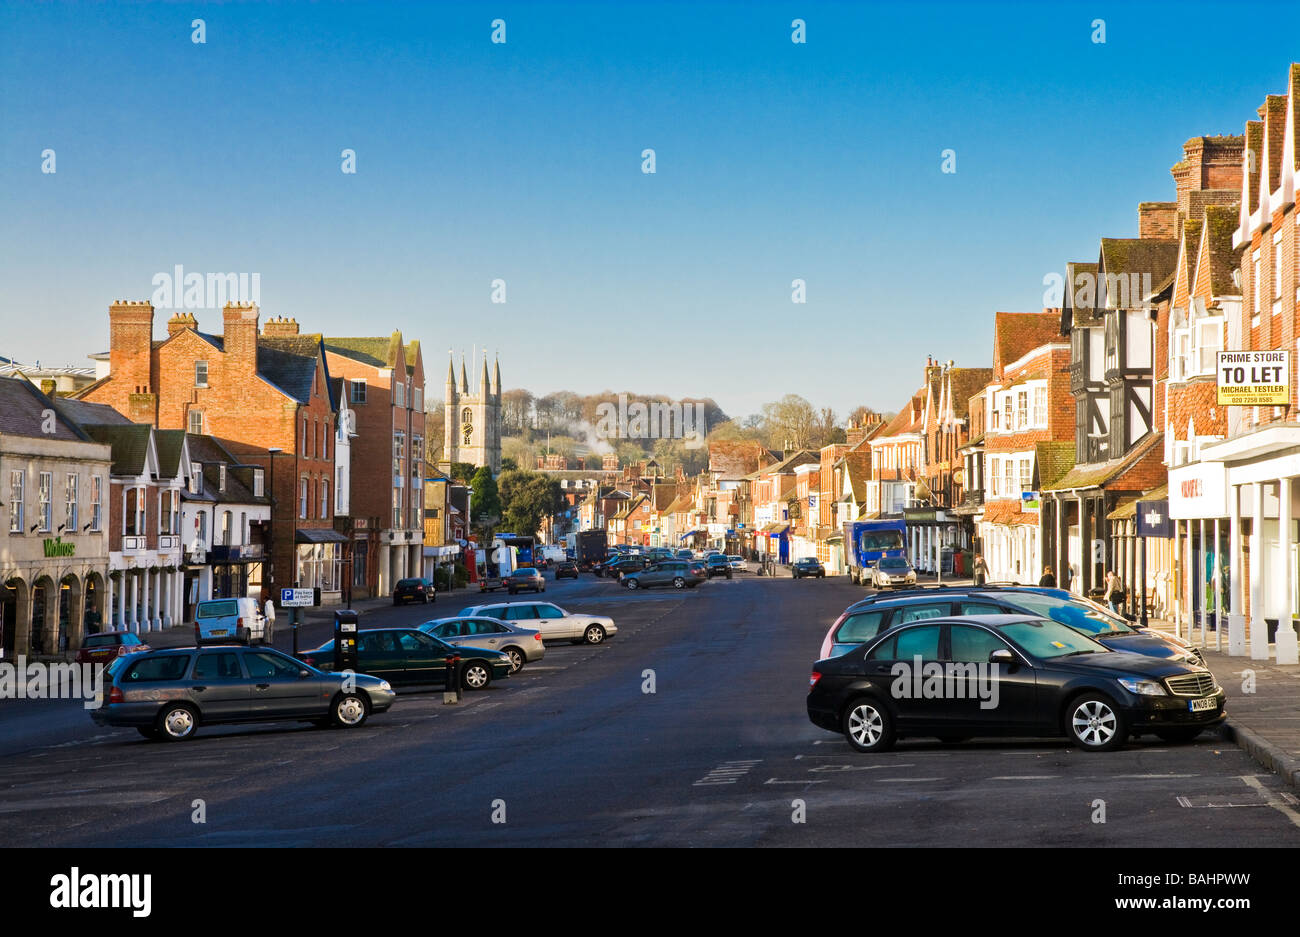 The High Street in the typical English market town of Marlborough Wiltshire England UK This is the widest high street Stock Photo